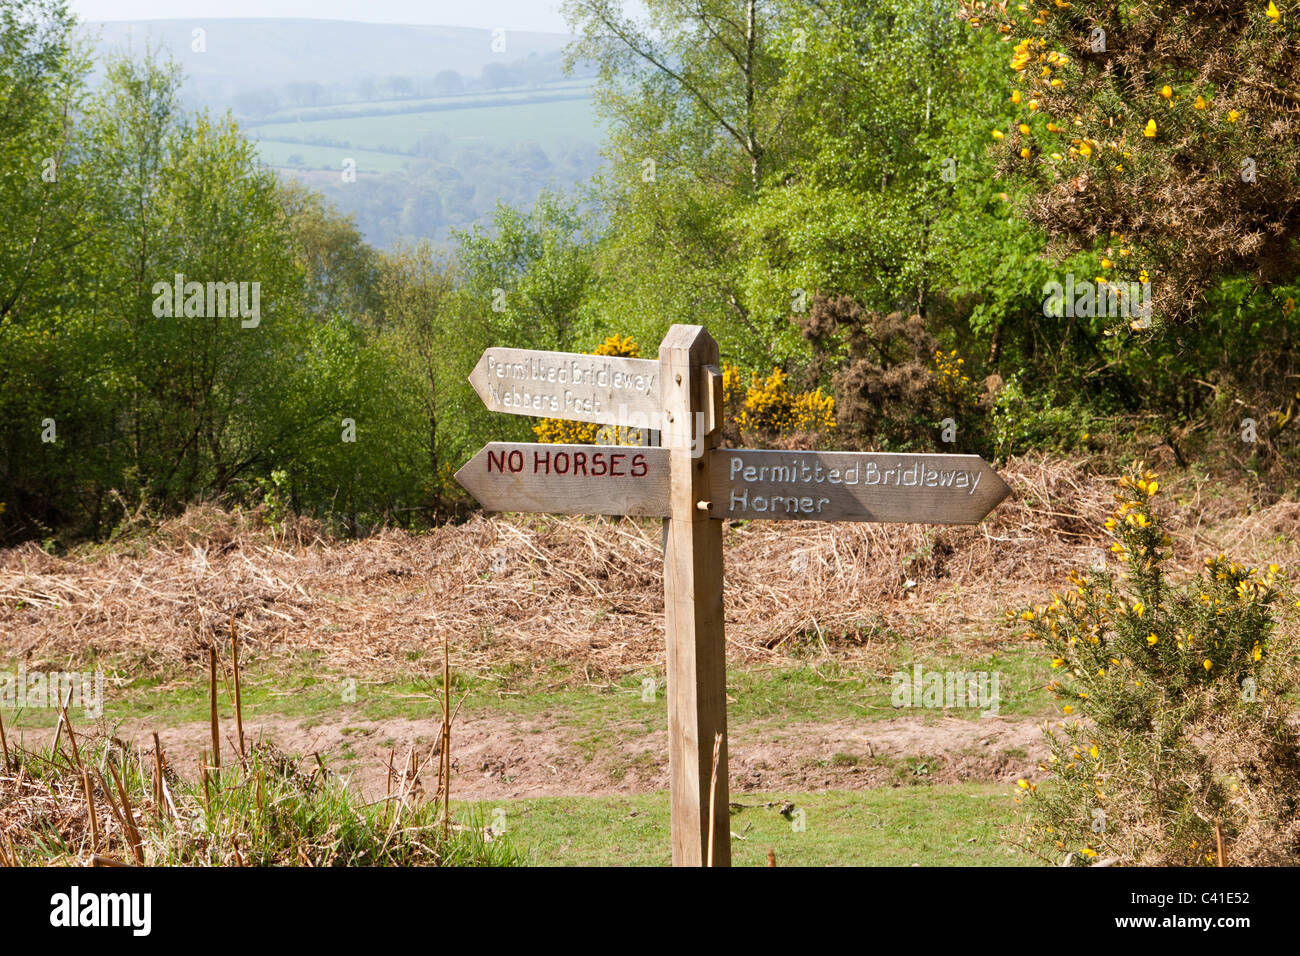 Permitted bridleway sign on the Webbers Post Easy Access Trail on Exmoor, Somerset, England UK - Stock Image